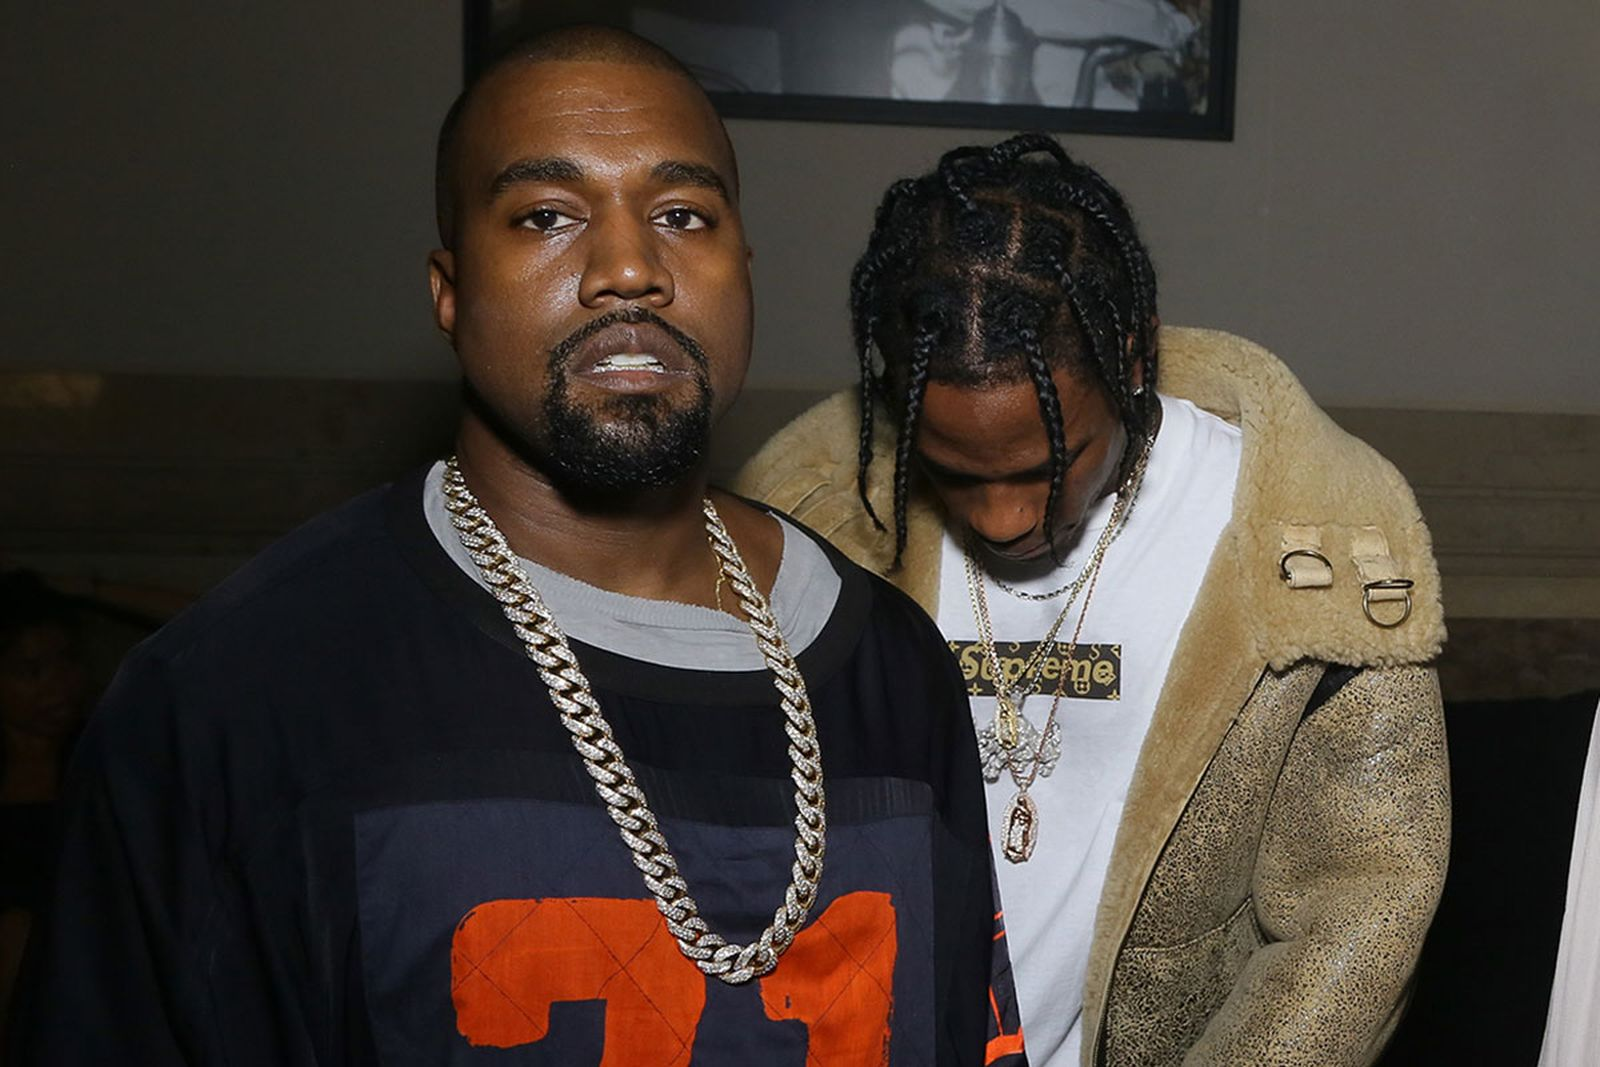 Kanye West and Travis Scott